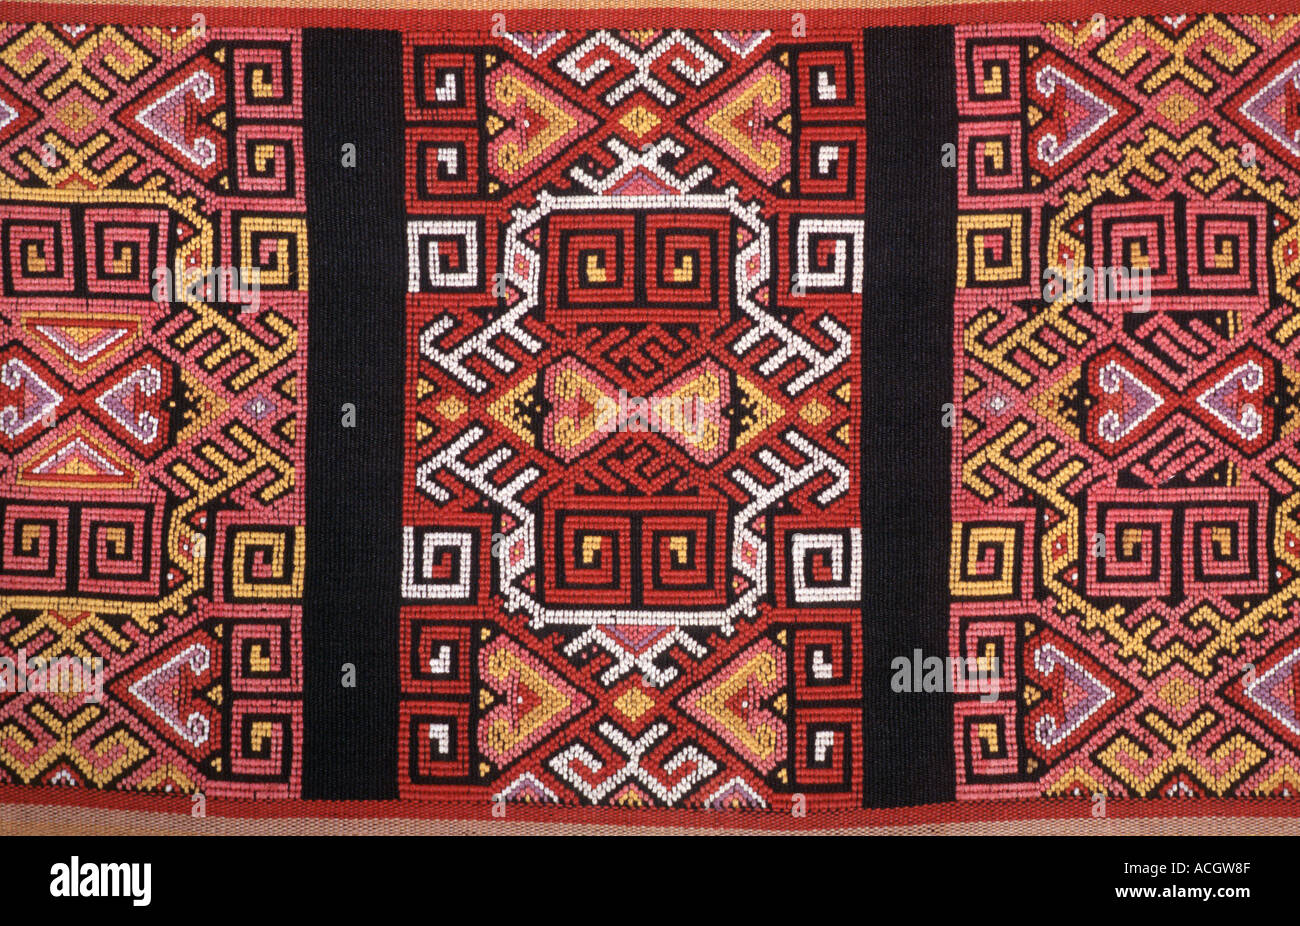 Brocaded skirt fabric from Timor Indonesia Stock Photo